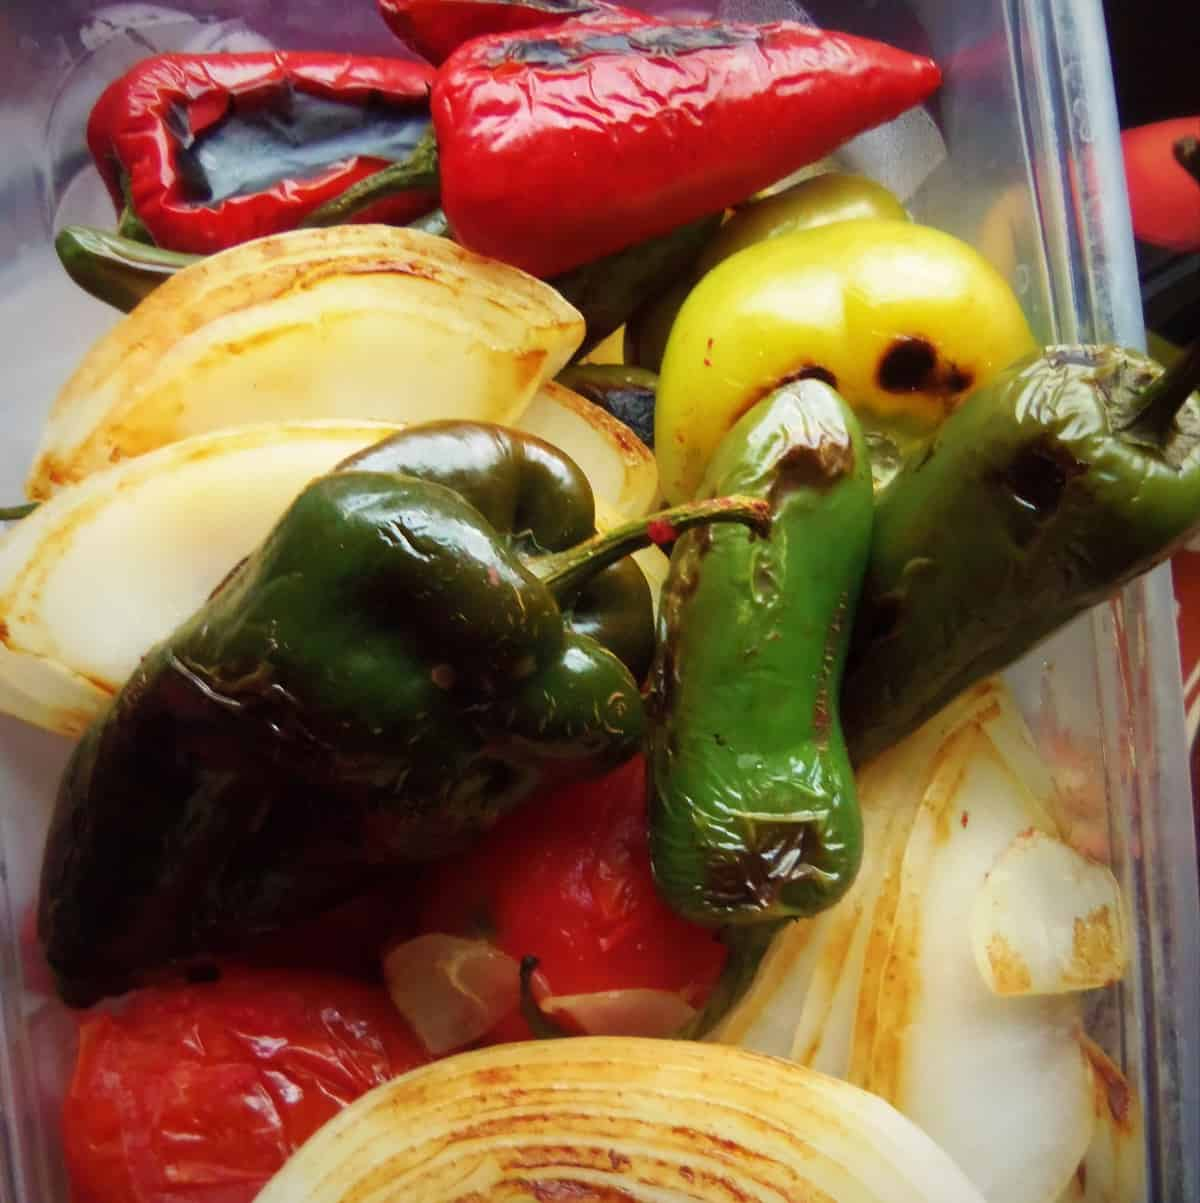 Smoked Chile Peppers, Tomatoes, Tomatillos and Onions ...